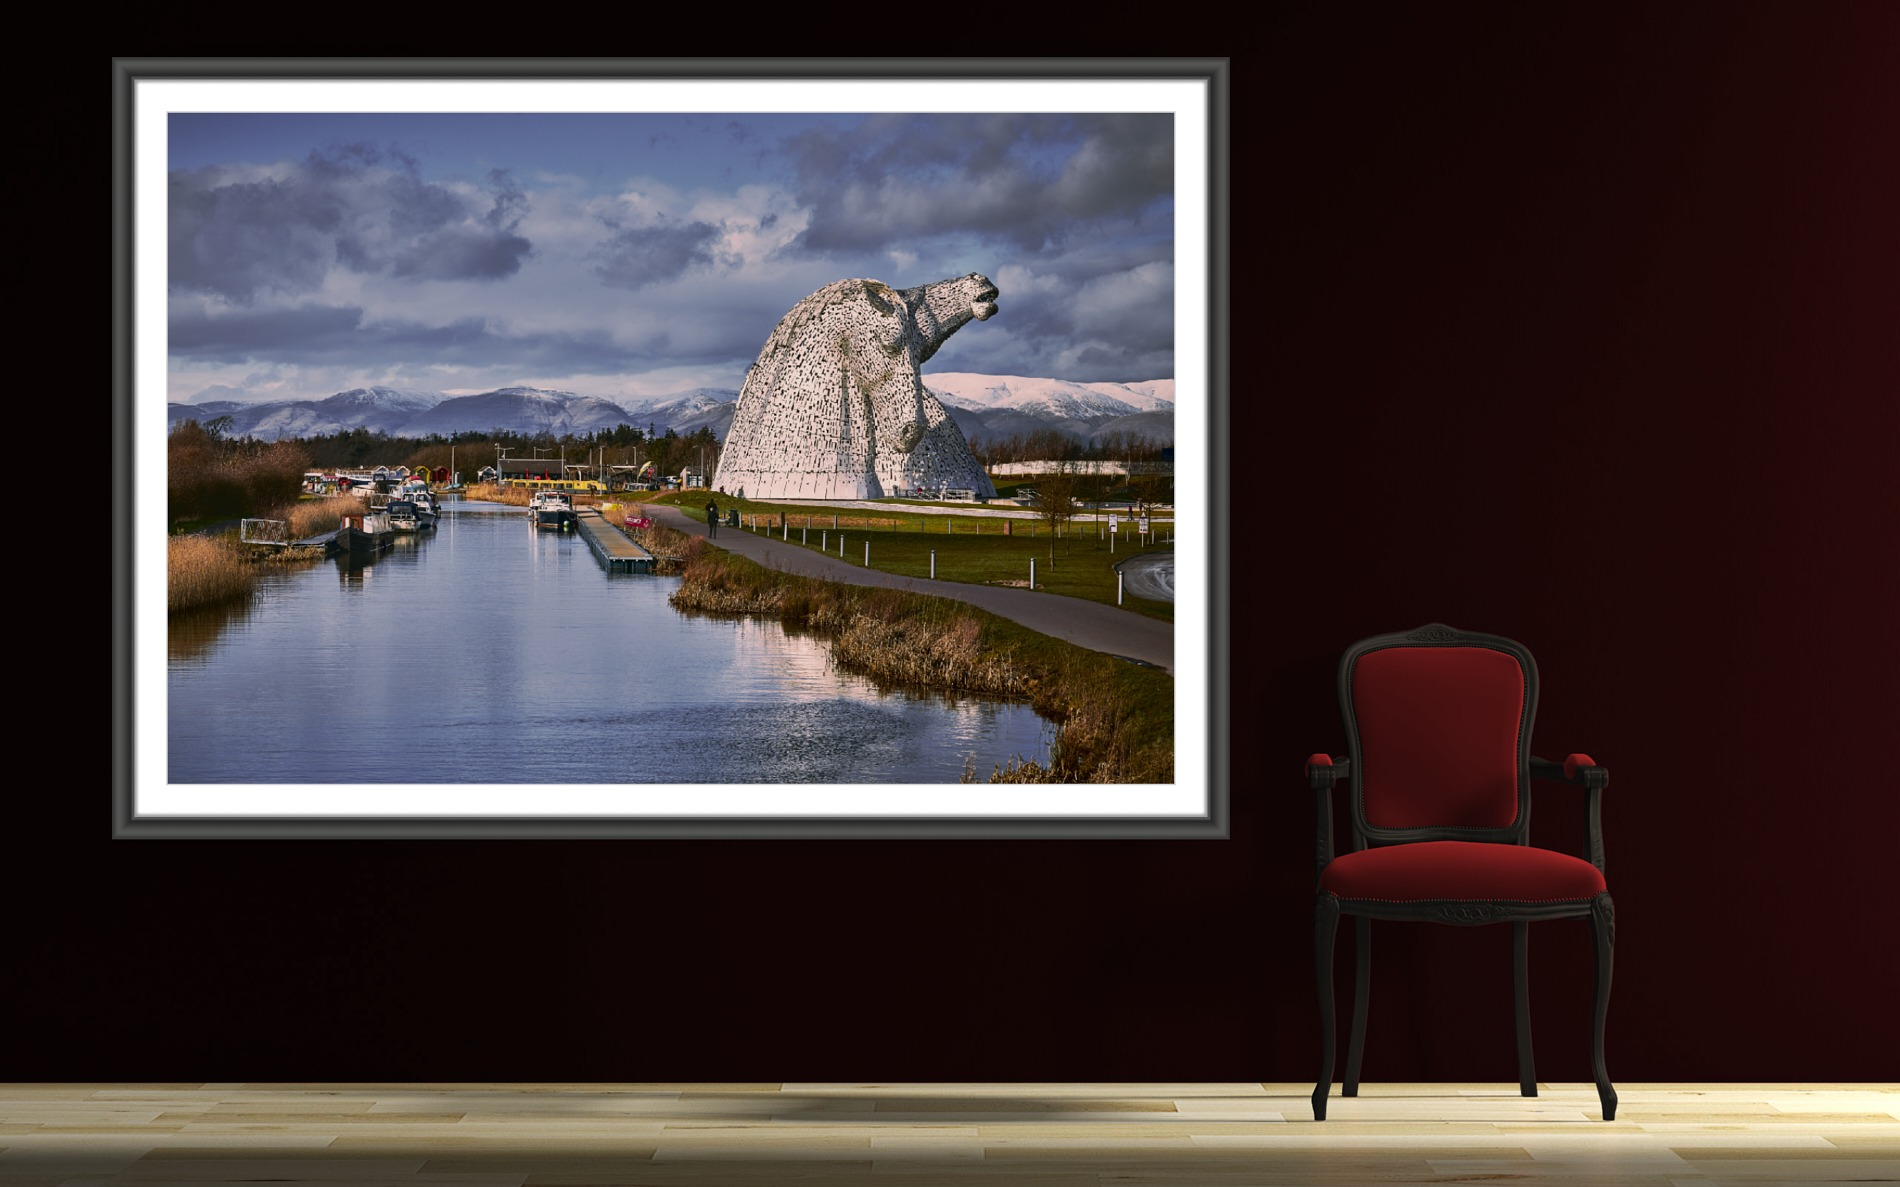 Fine art landscape: Wall art - The Kelpies - Scotland - Sculptor: Andy Scott